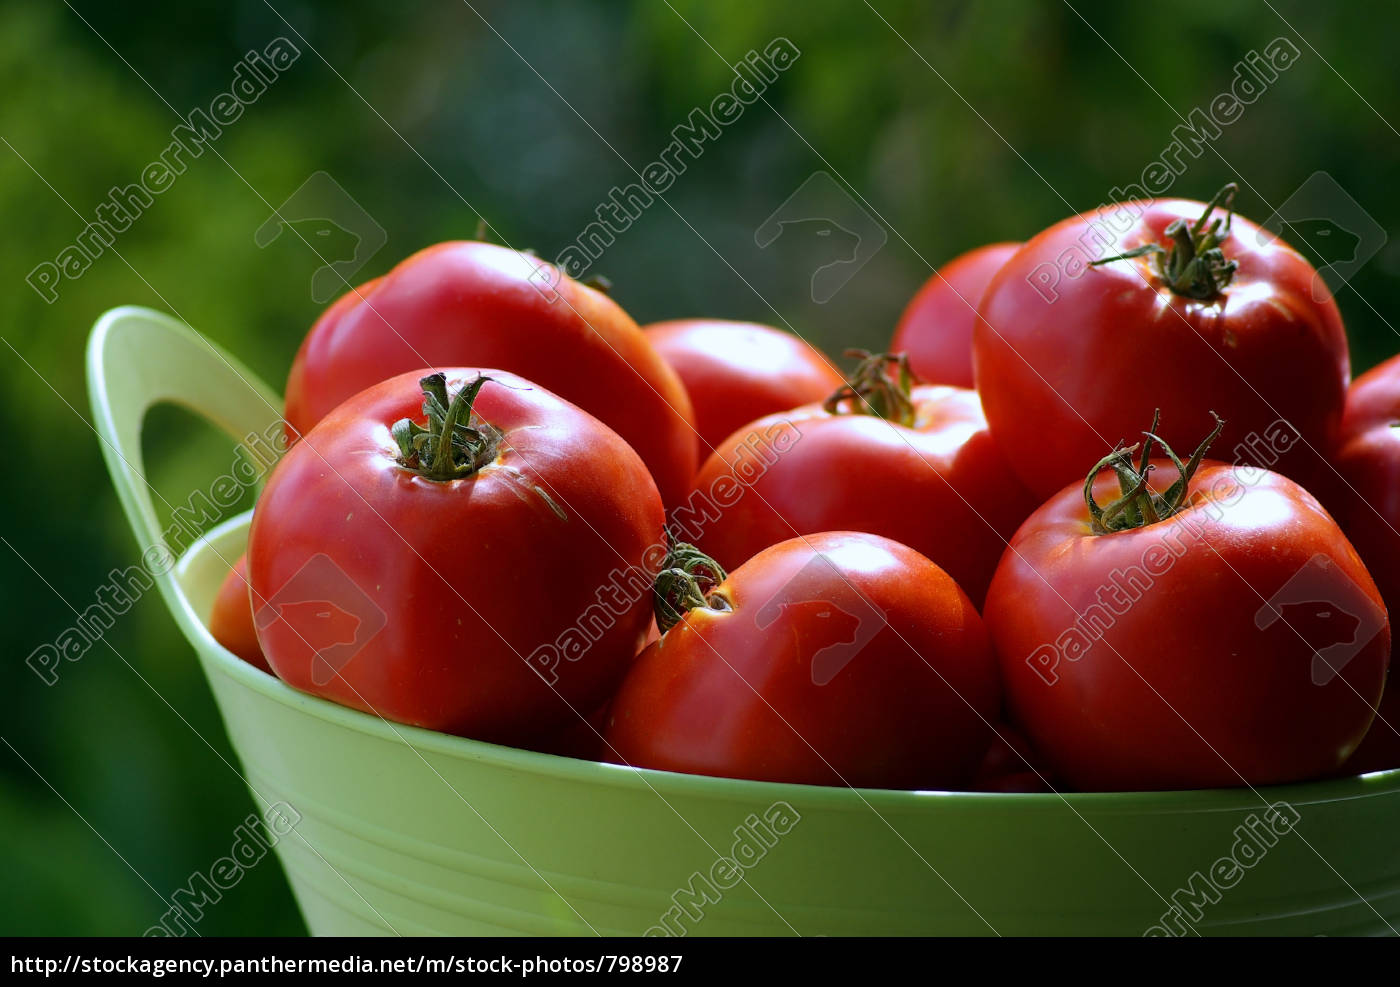 close, up, on, tomatoes, in, basket - 798987